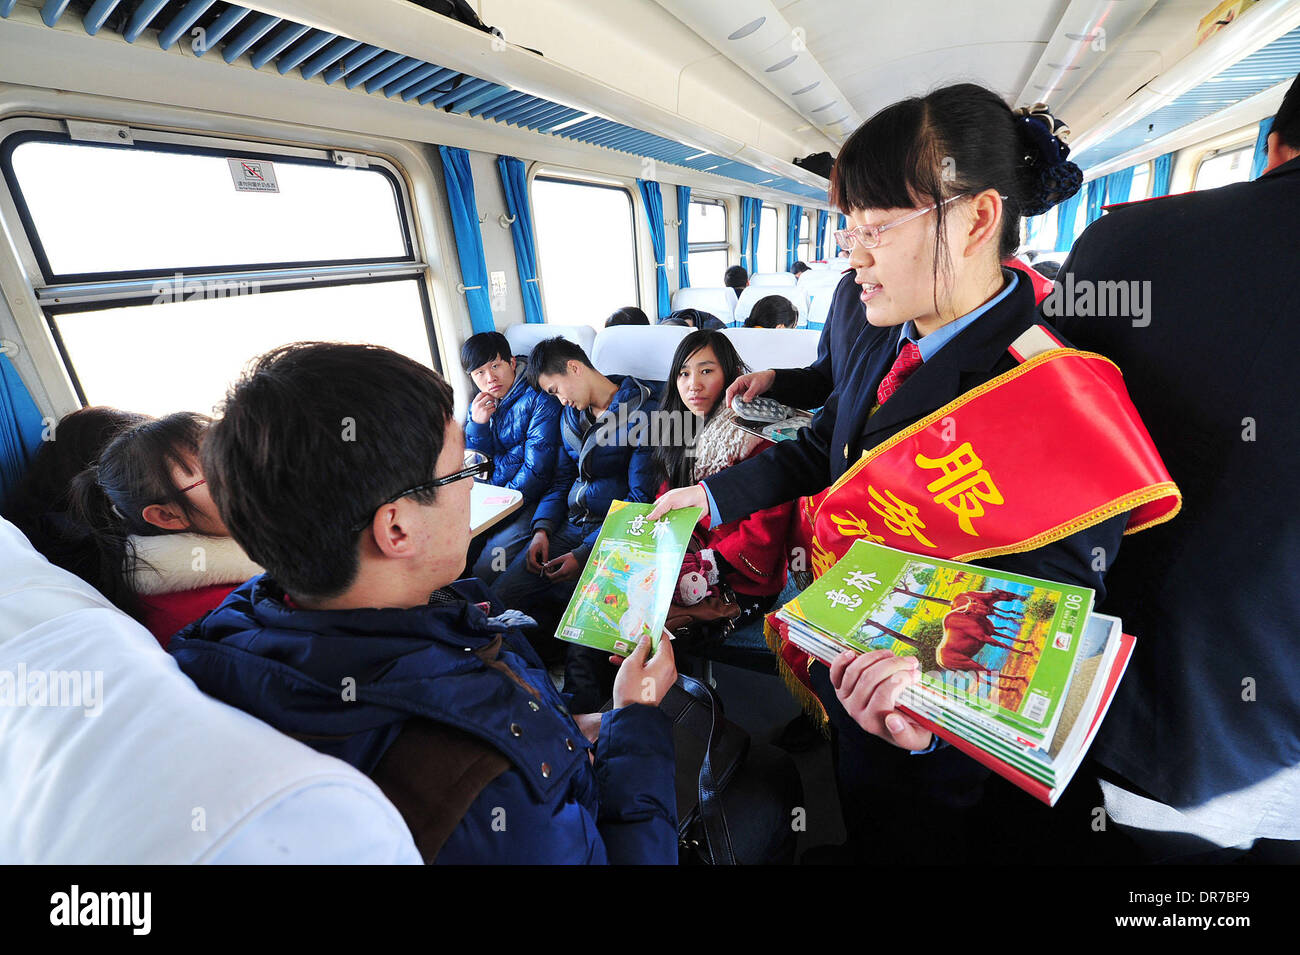 Yinchuan. 21st Jan, 2014. A steward distributes free books and magazines to  passengers